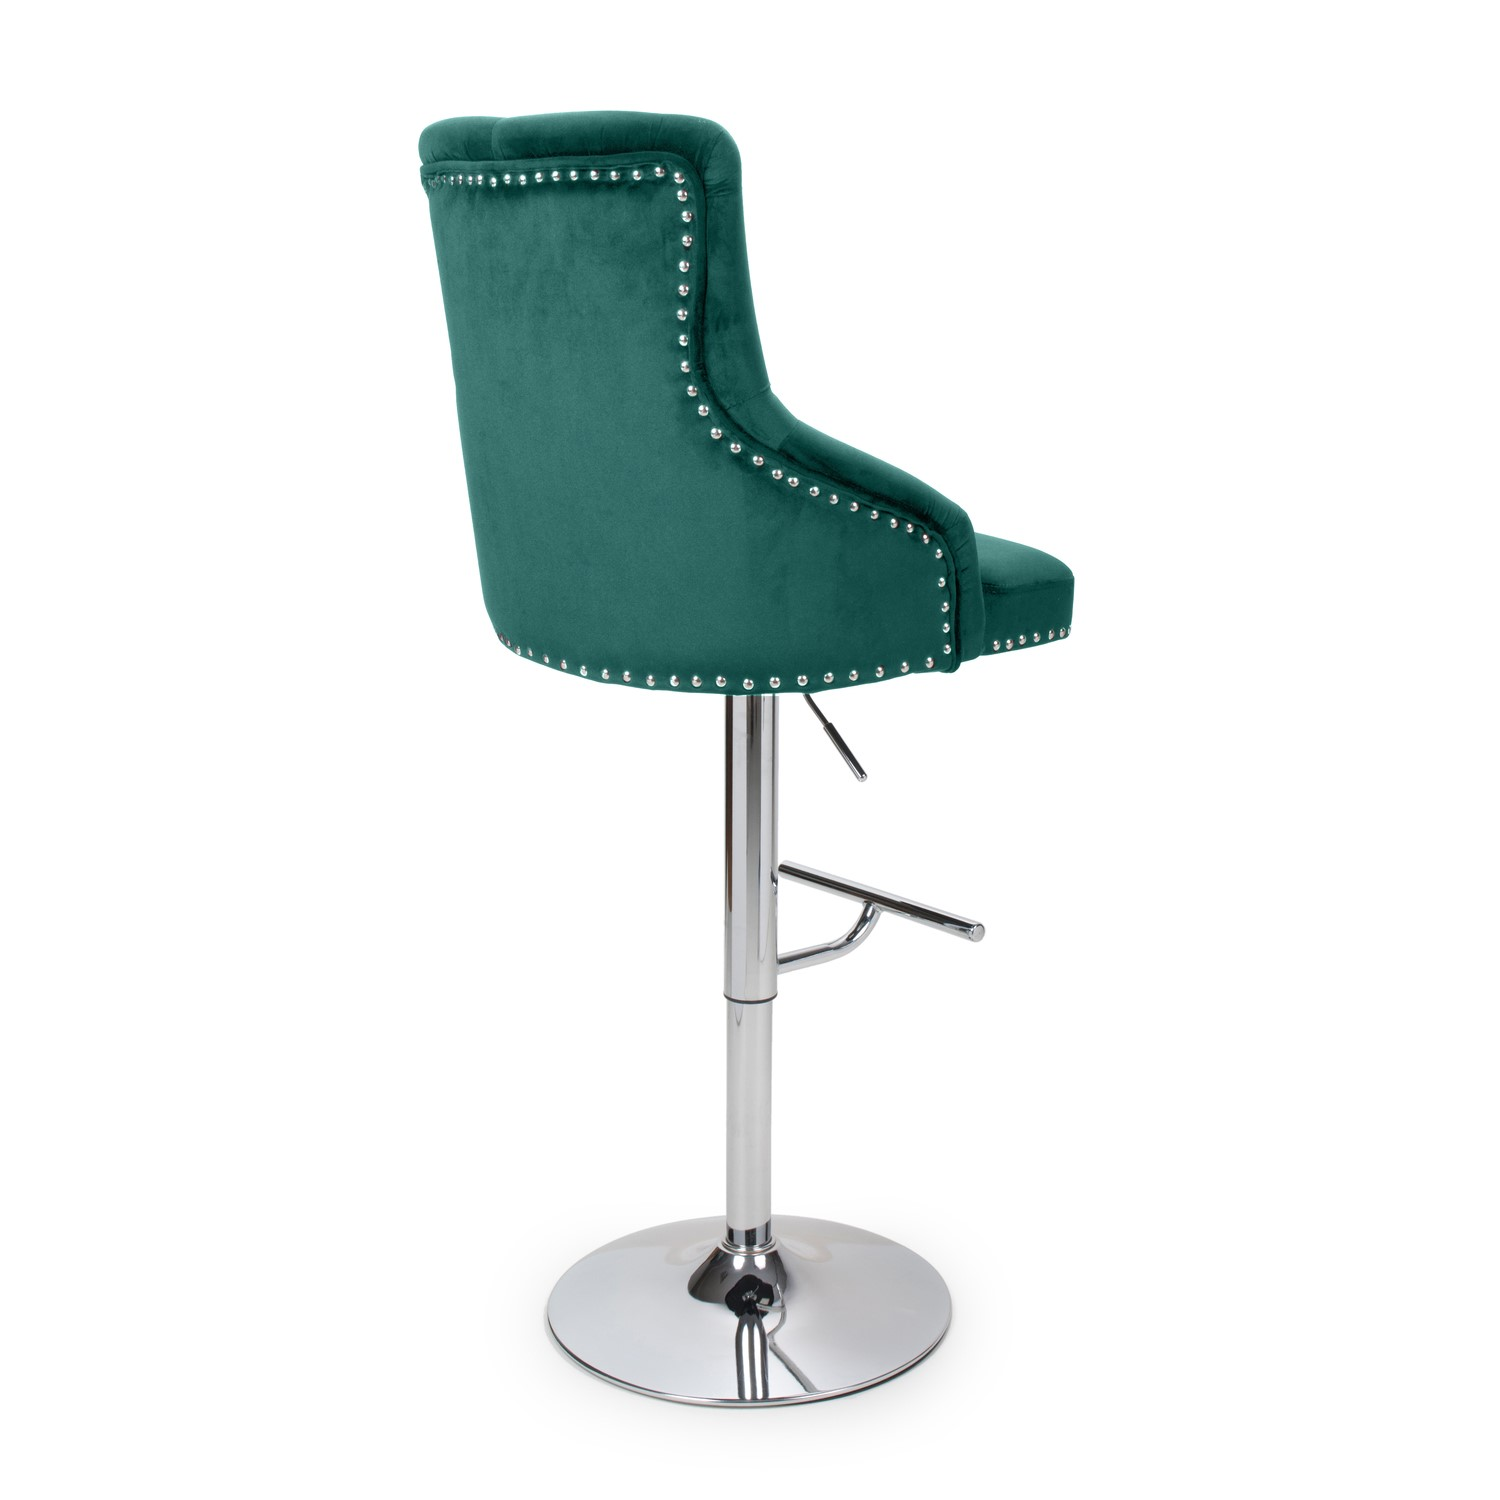 Adjustable Bar Stool In Green Velvet With Silver Studs Rocco Furniture123